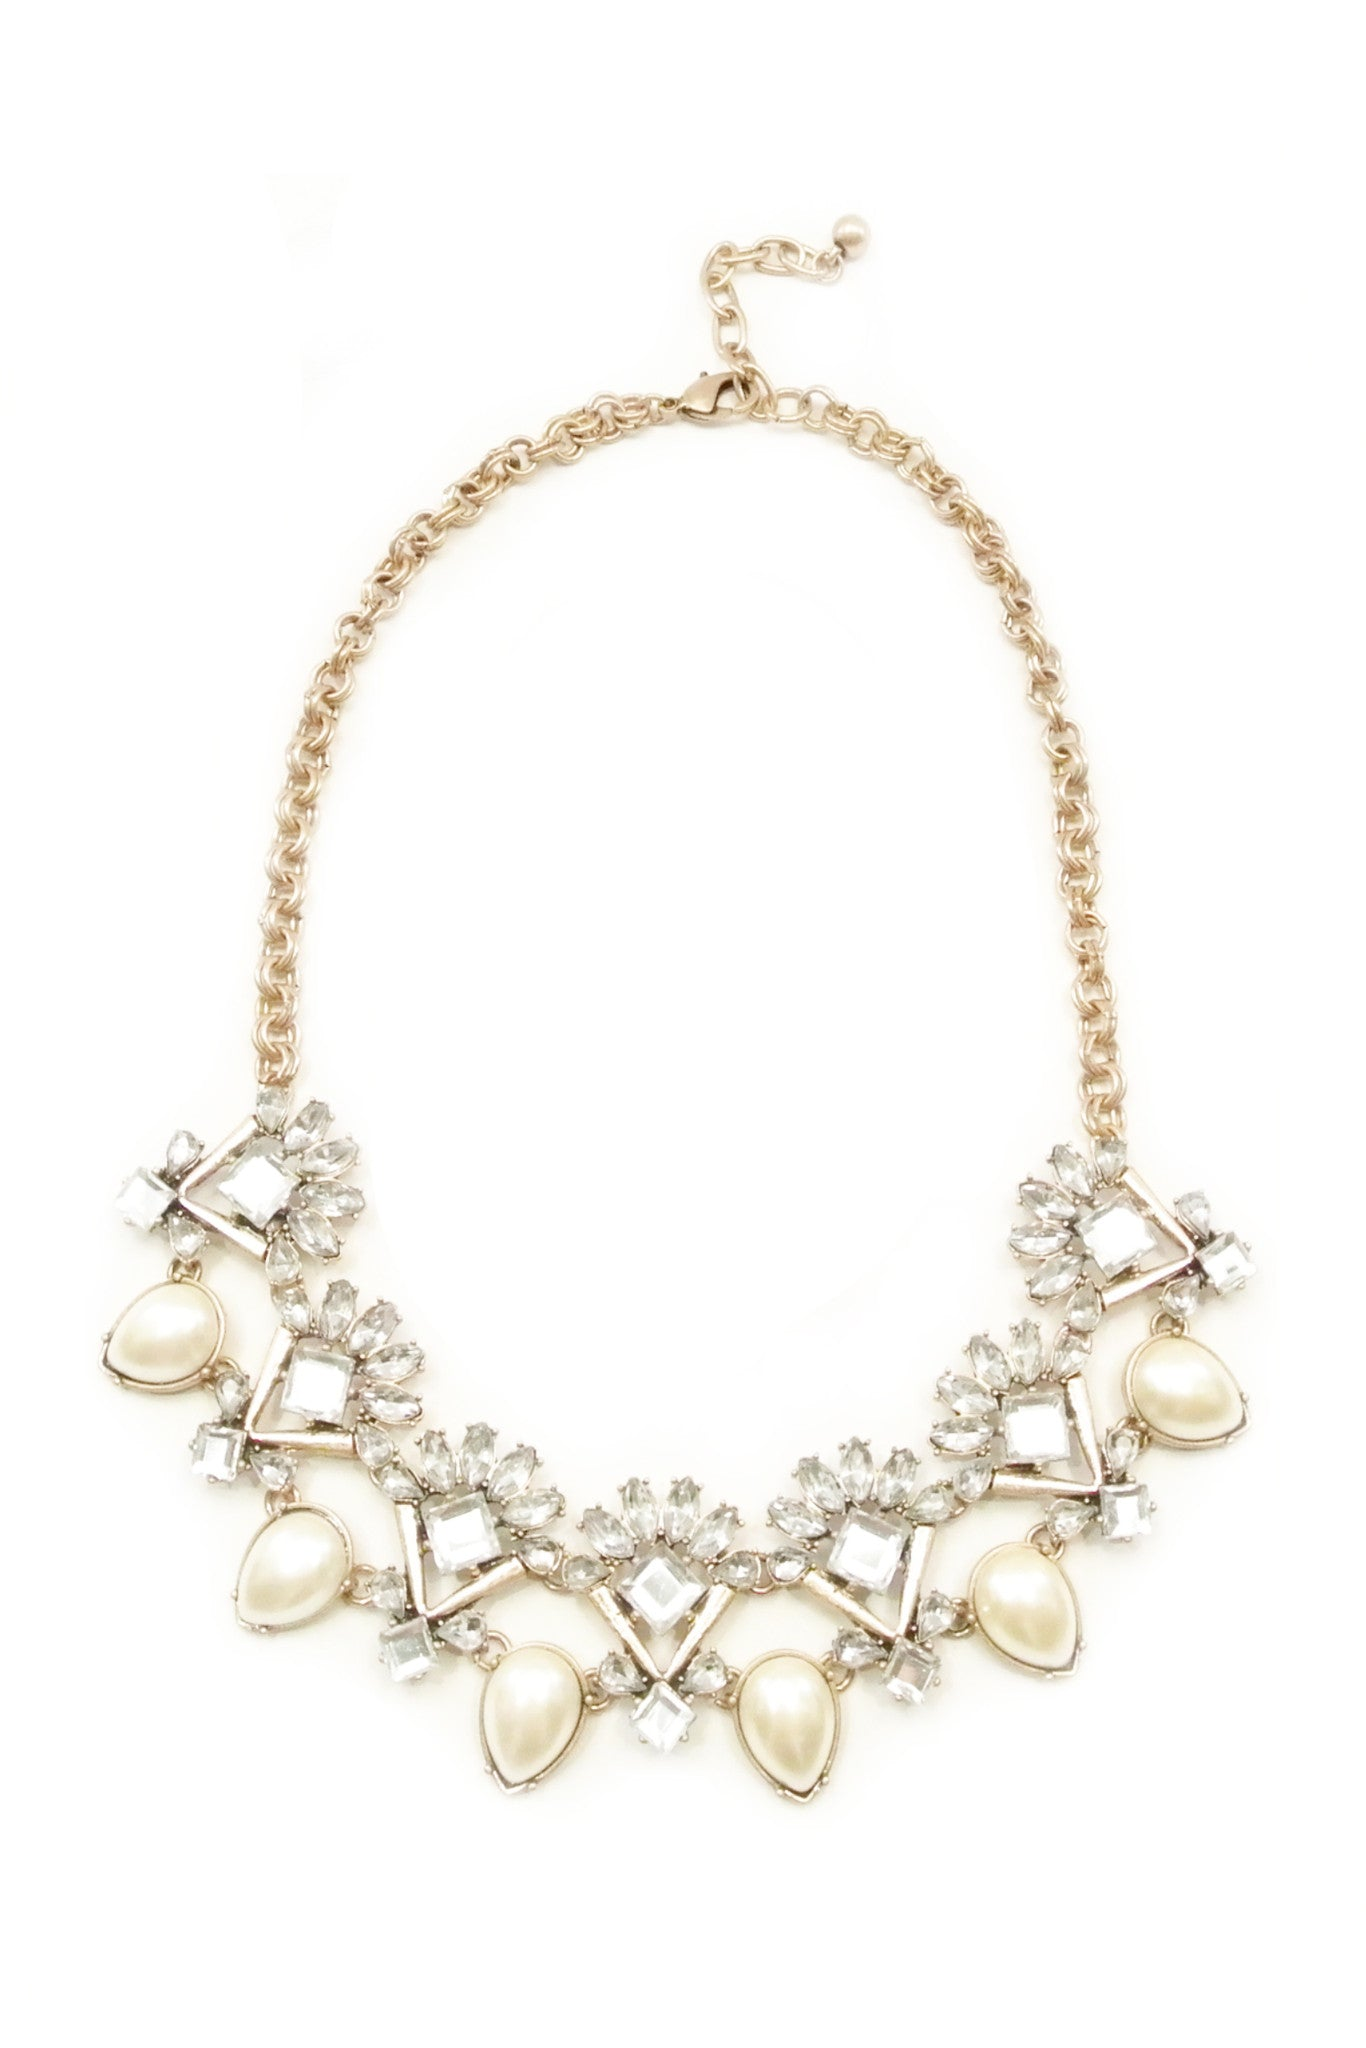 Vintage Crystal Pearl Necklace